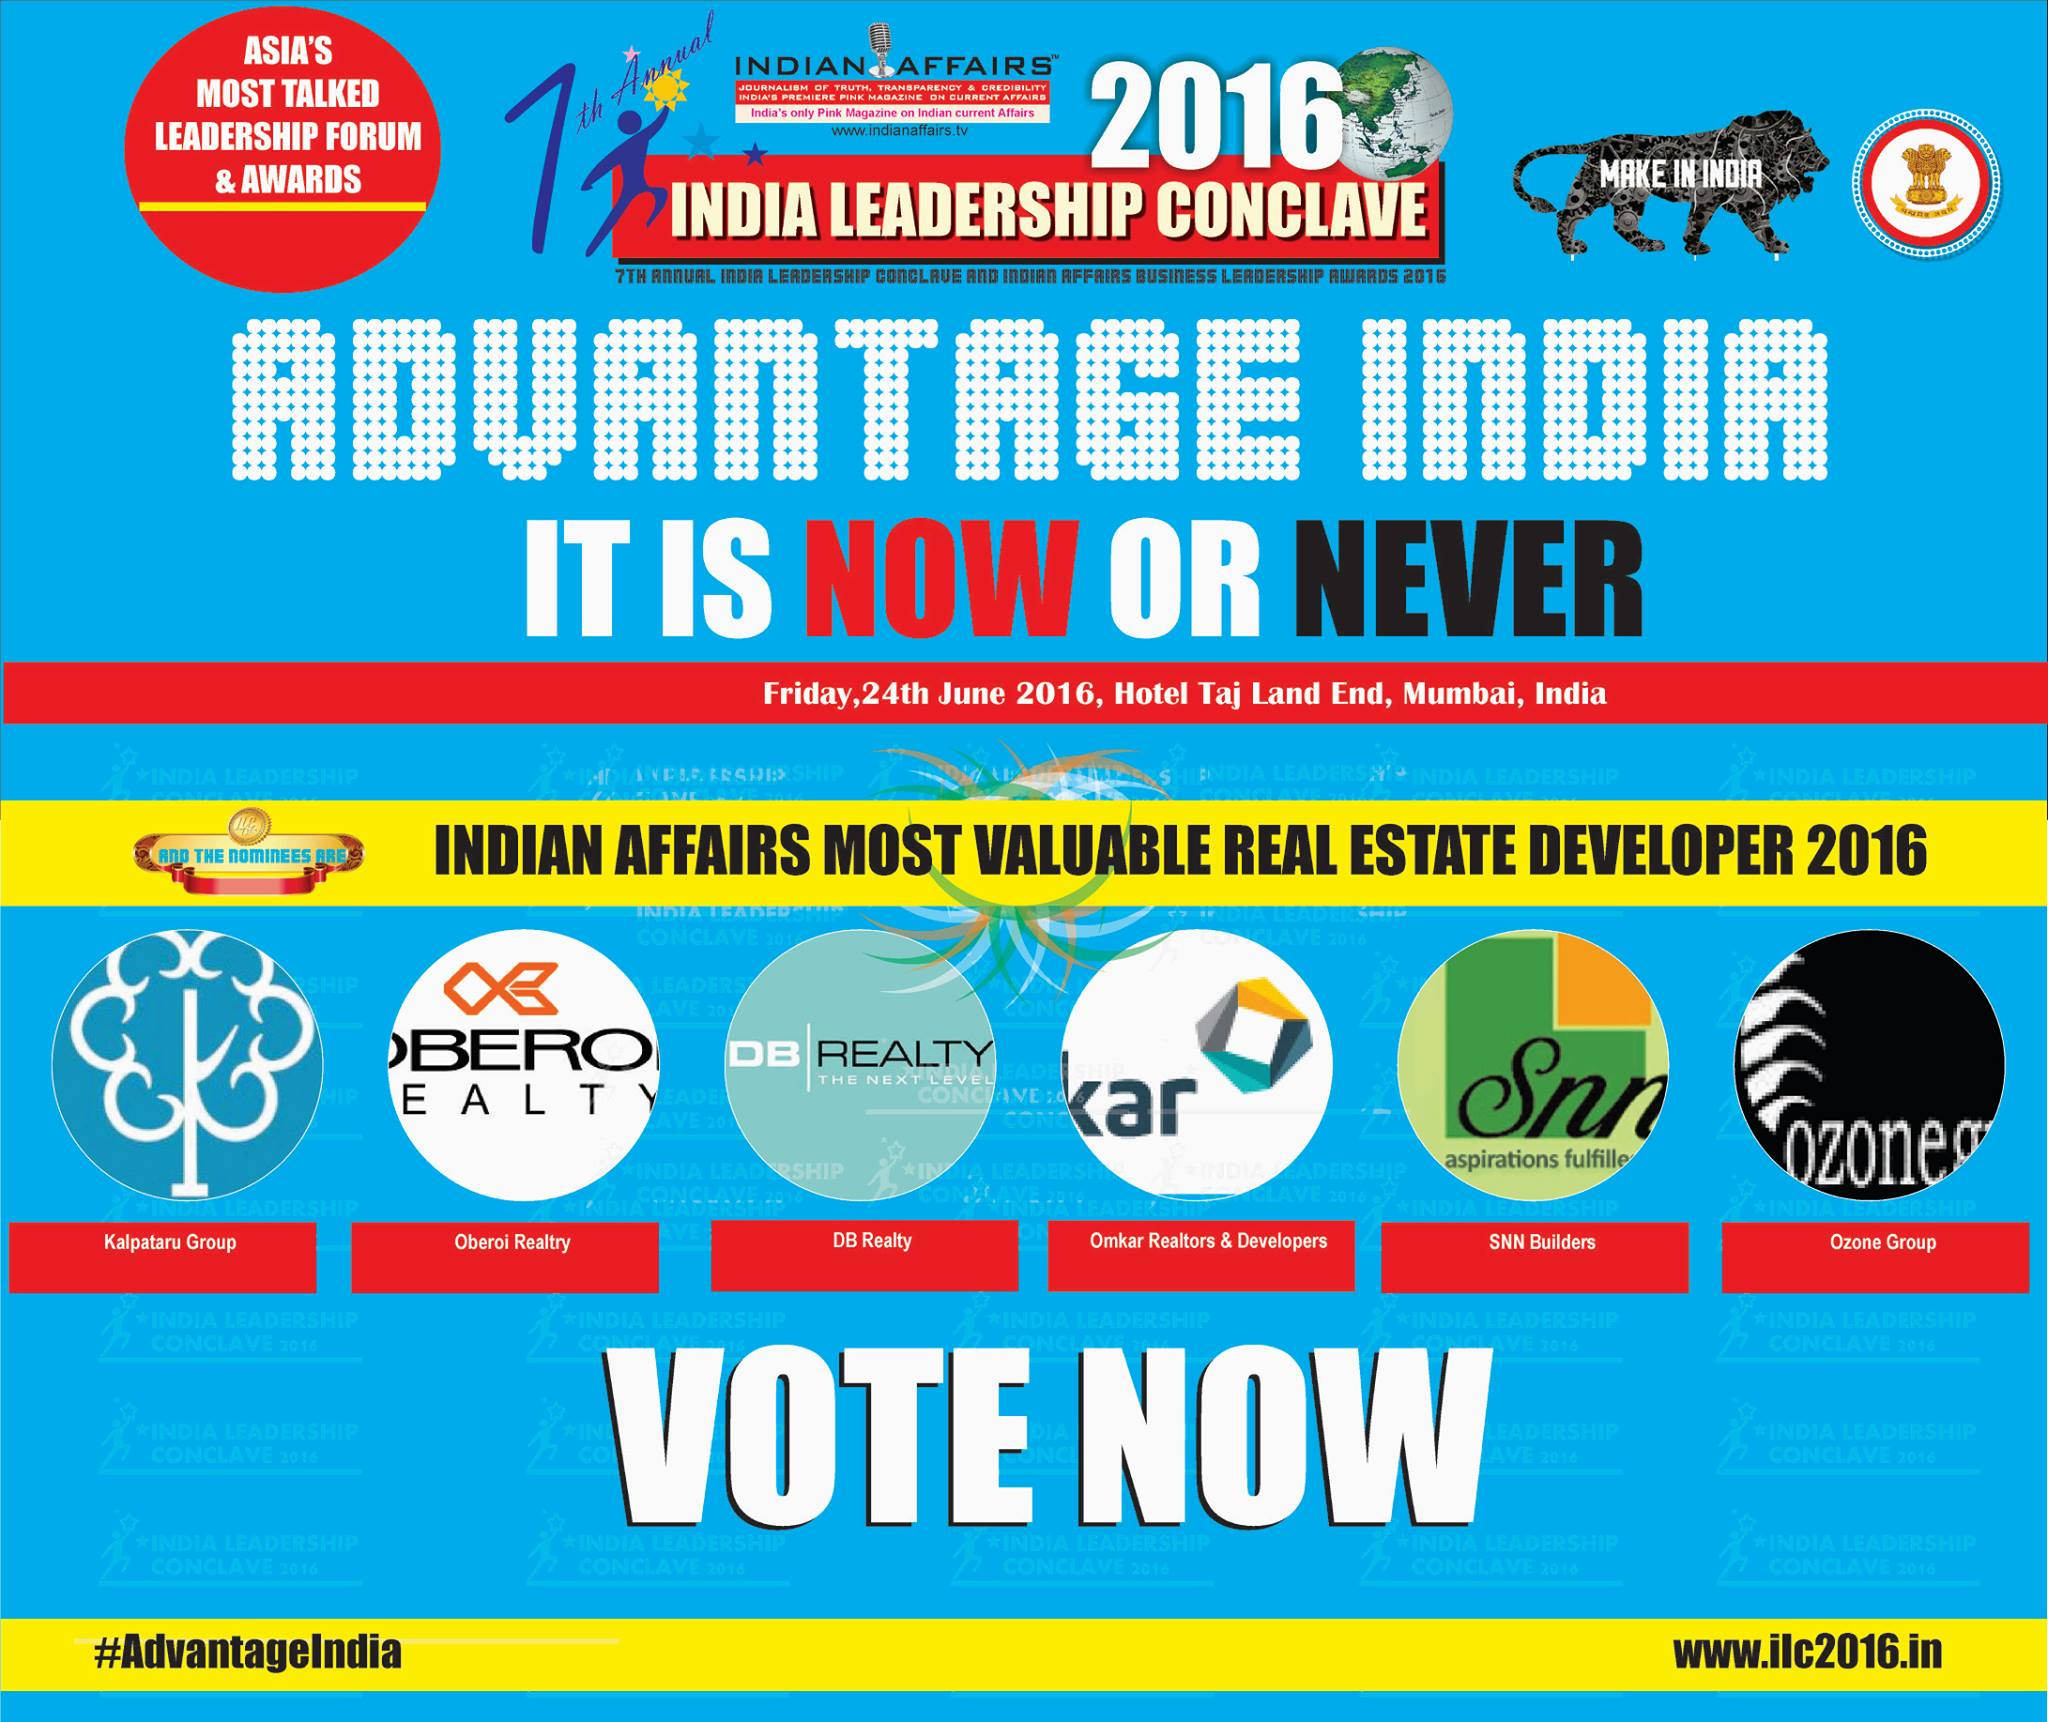 Indian Affairs Most Valuable Real Estate Developer 2016